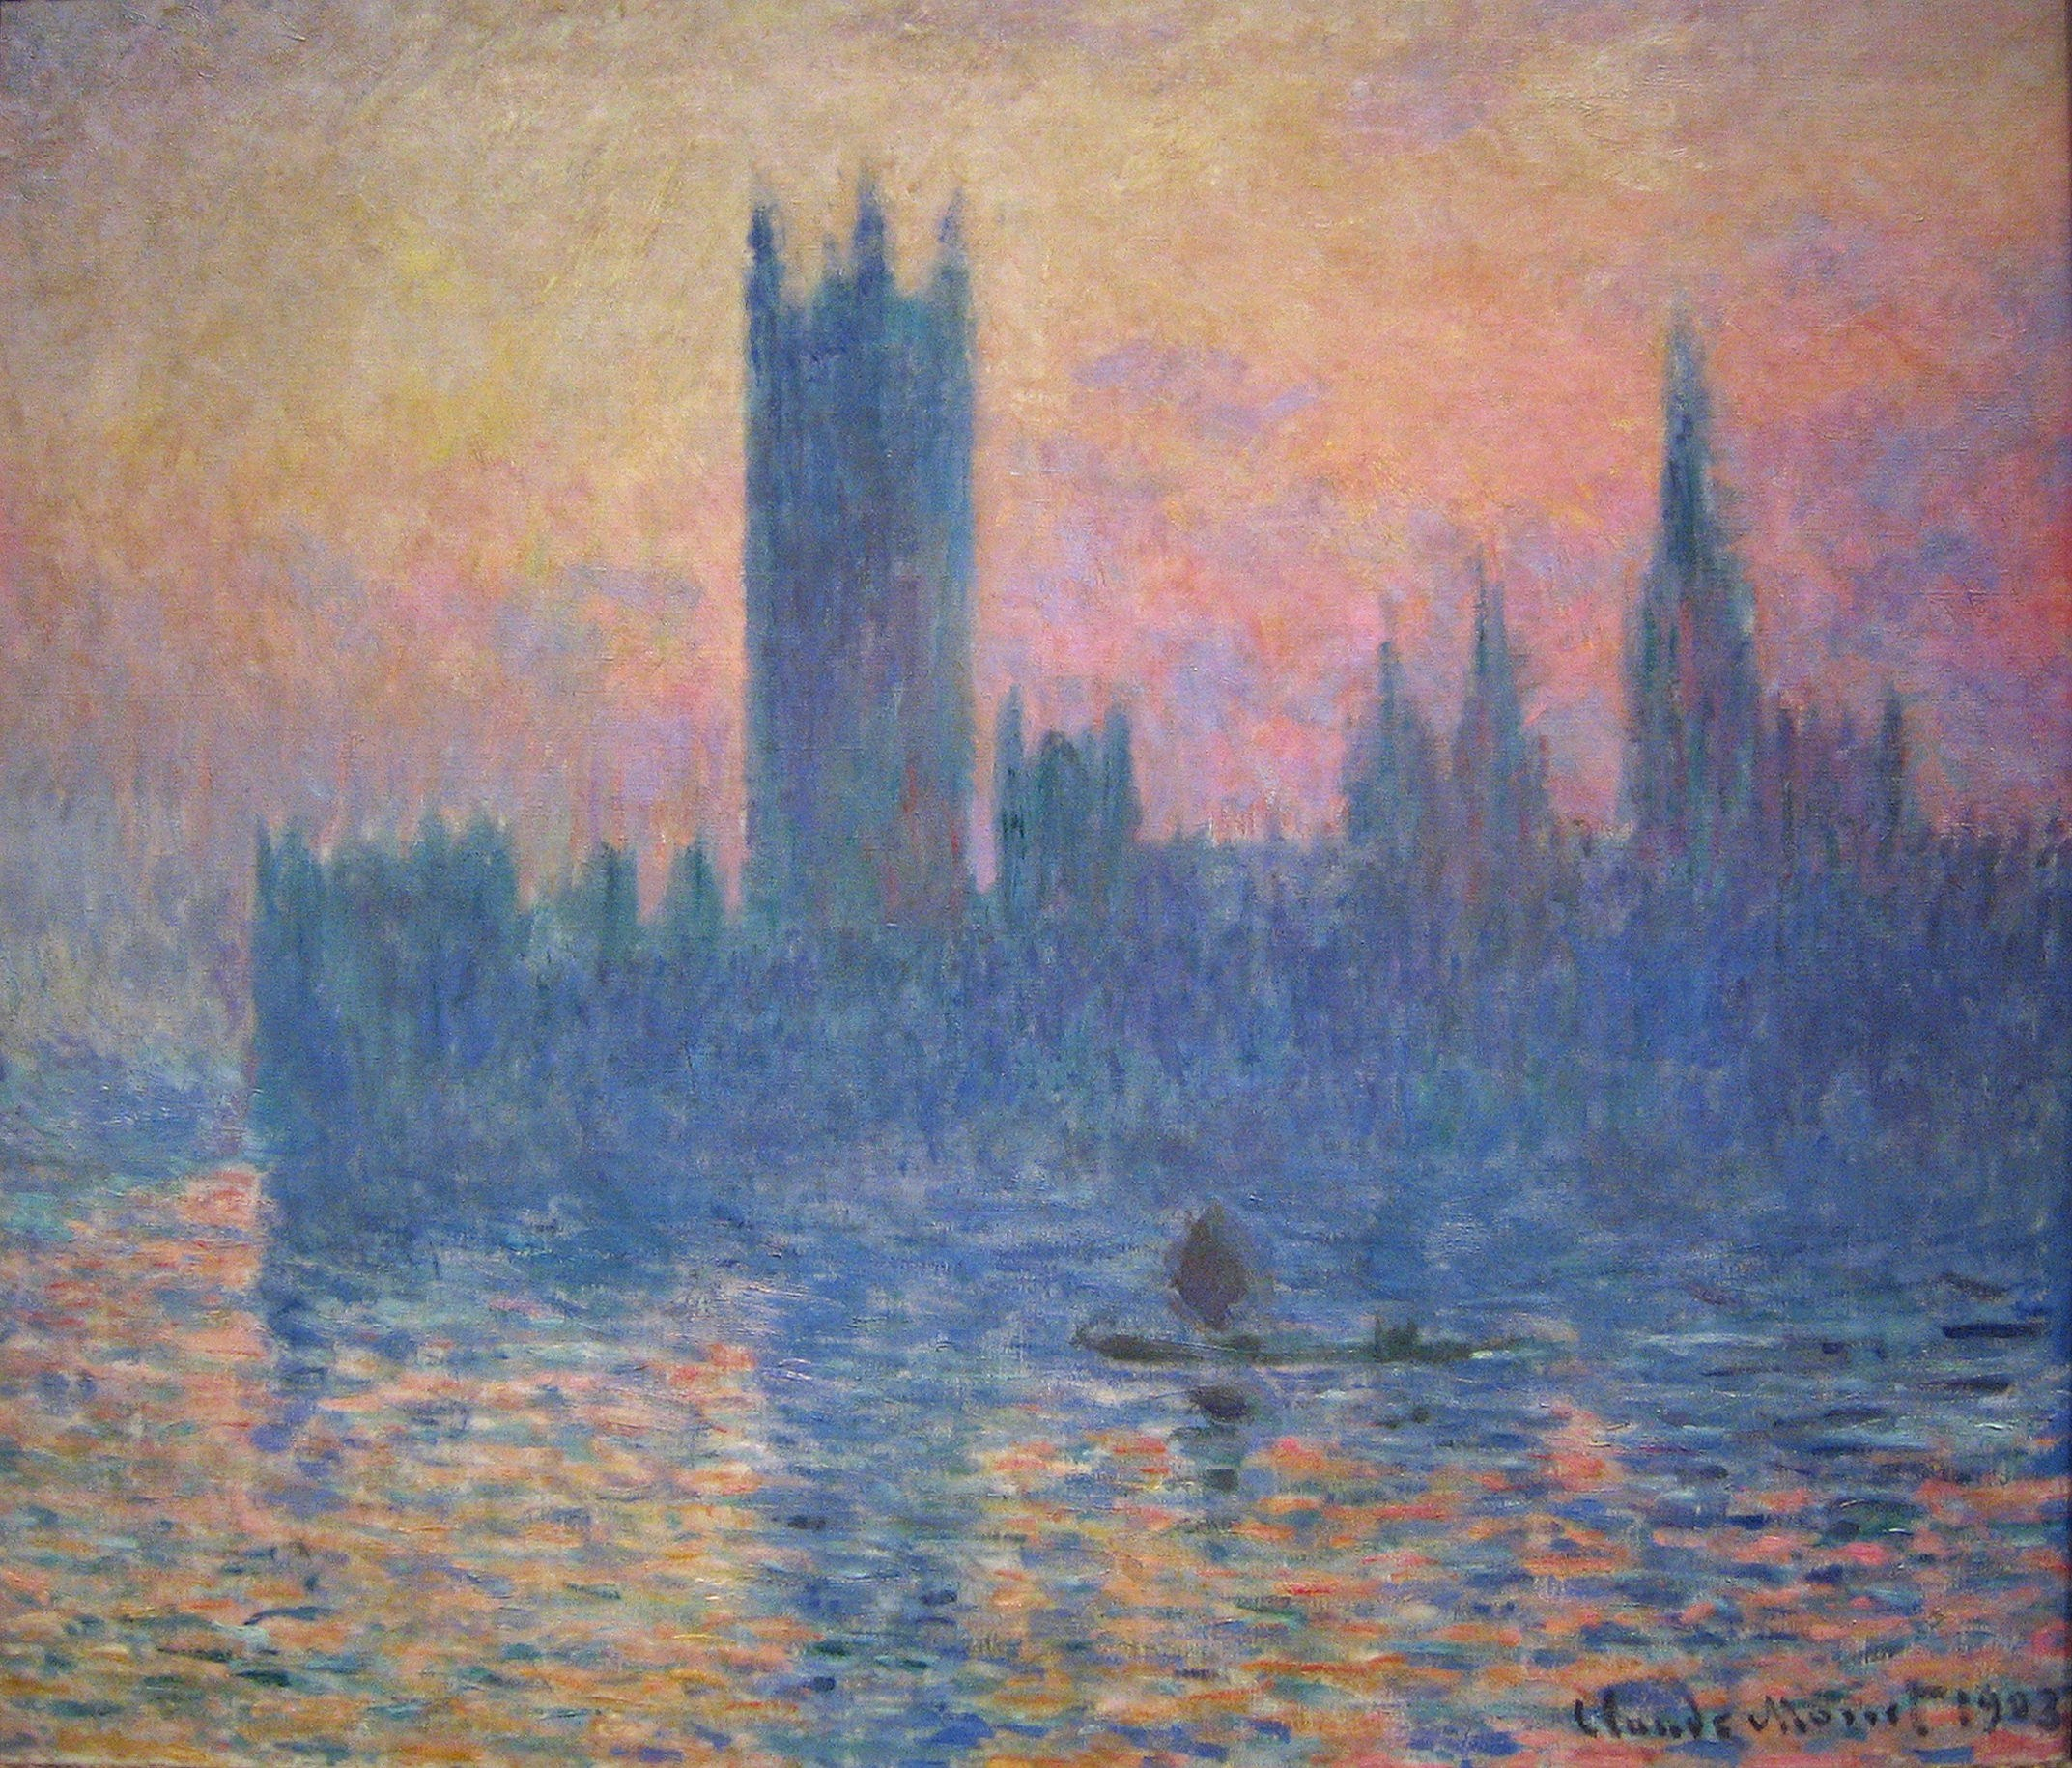 Claude Monet, The Houses of Parliament, sunset